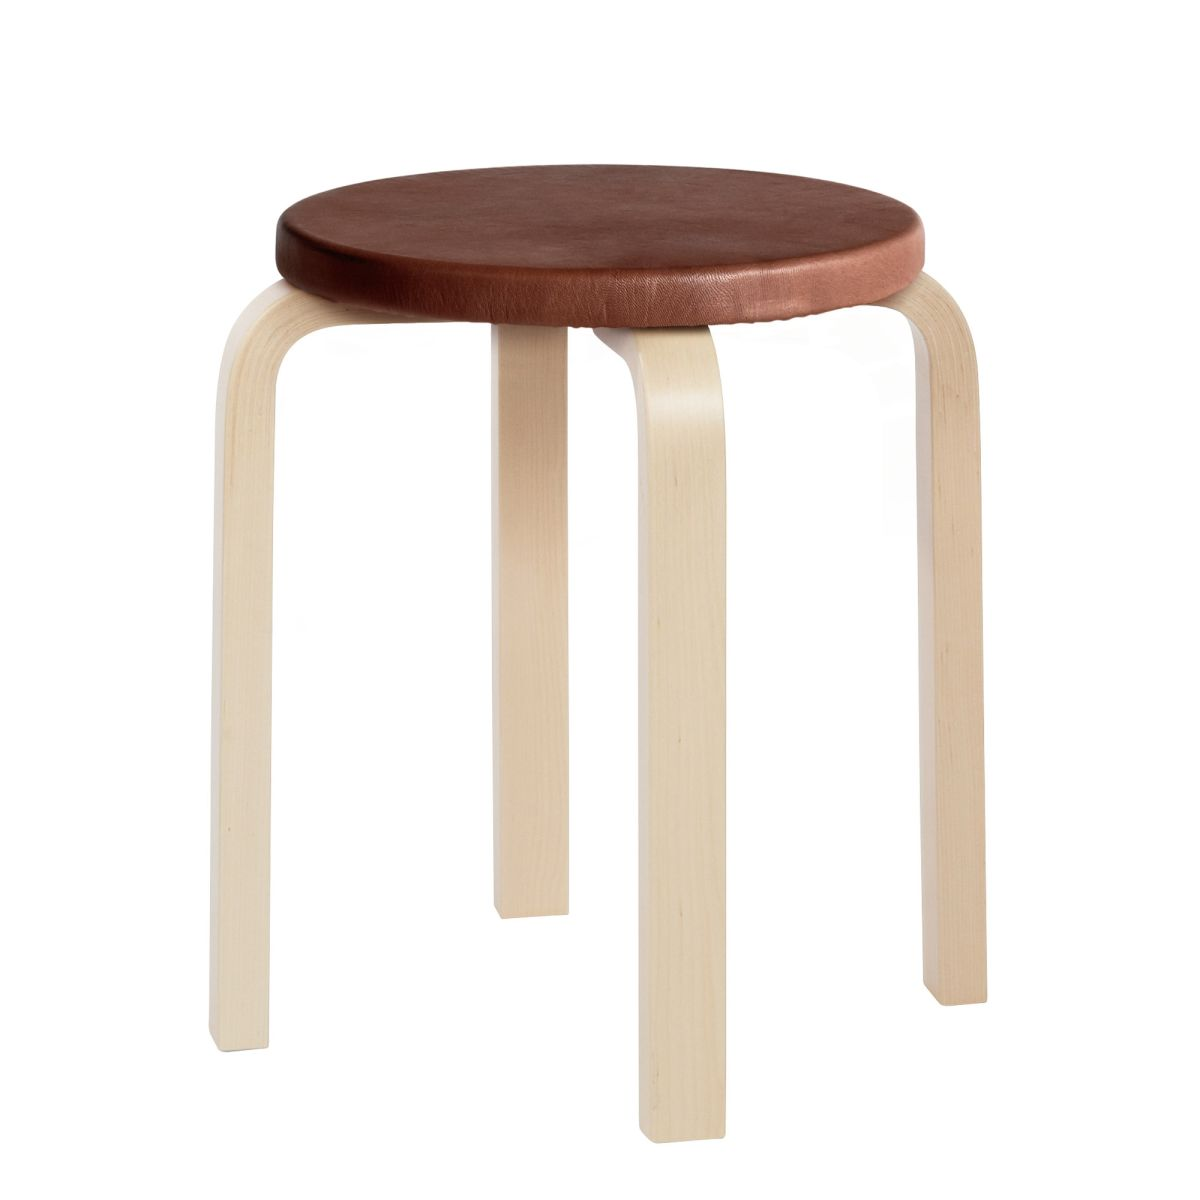 Stool E60 legs birch, leather upholstery no padding top